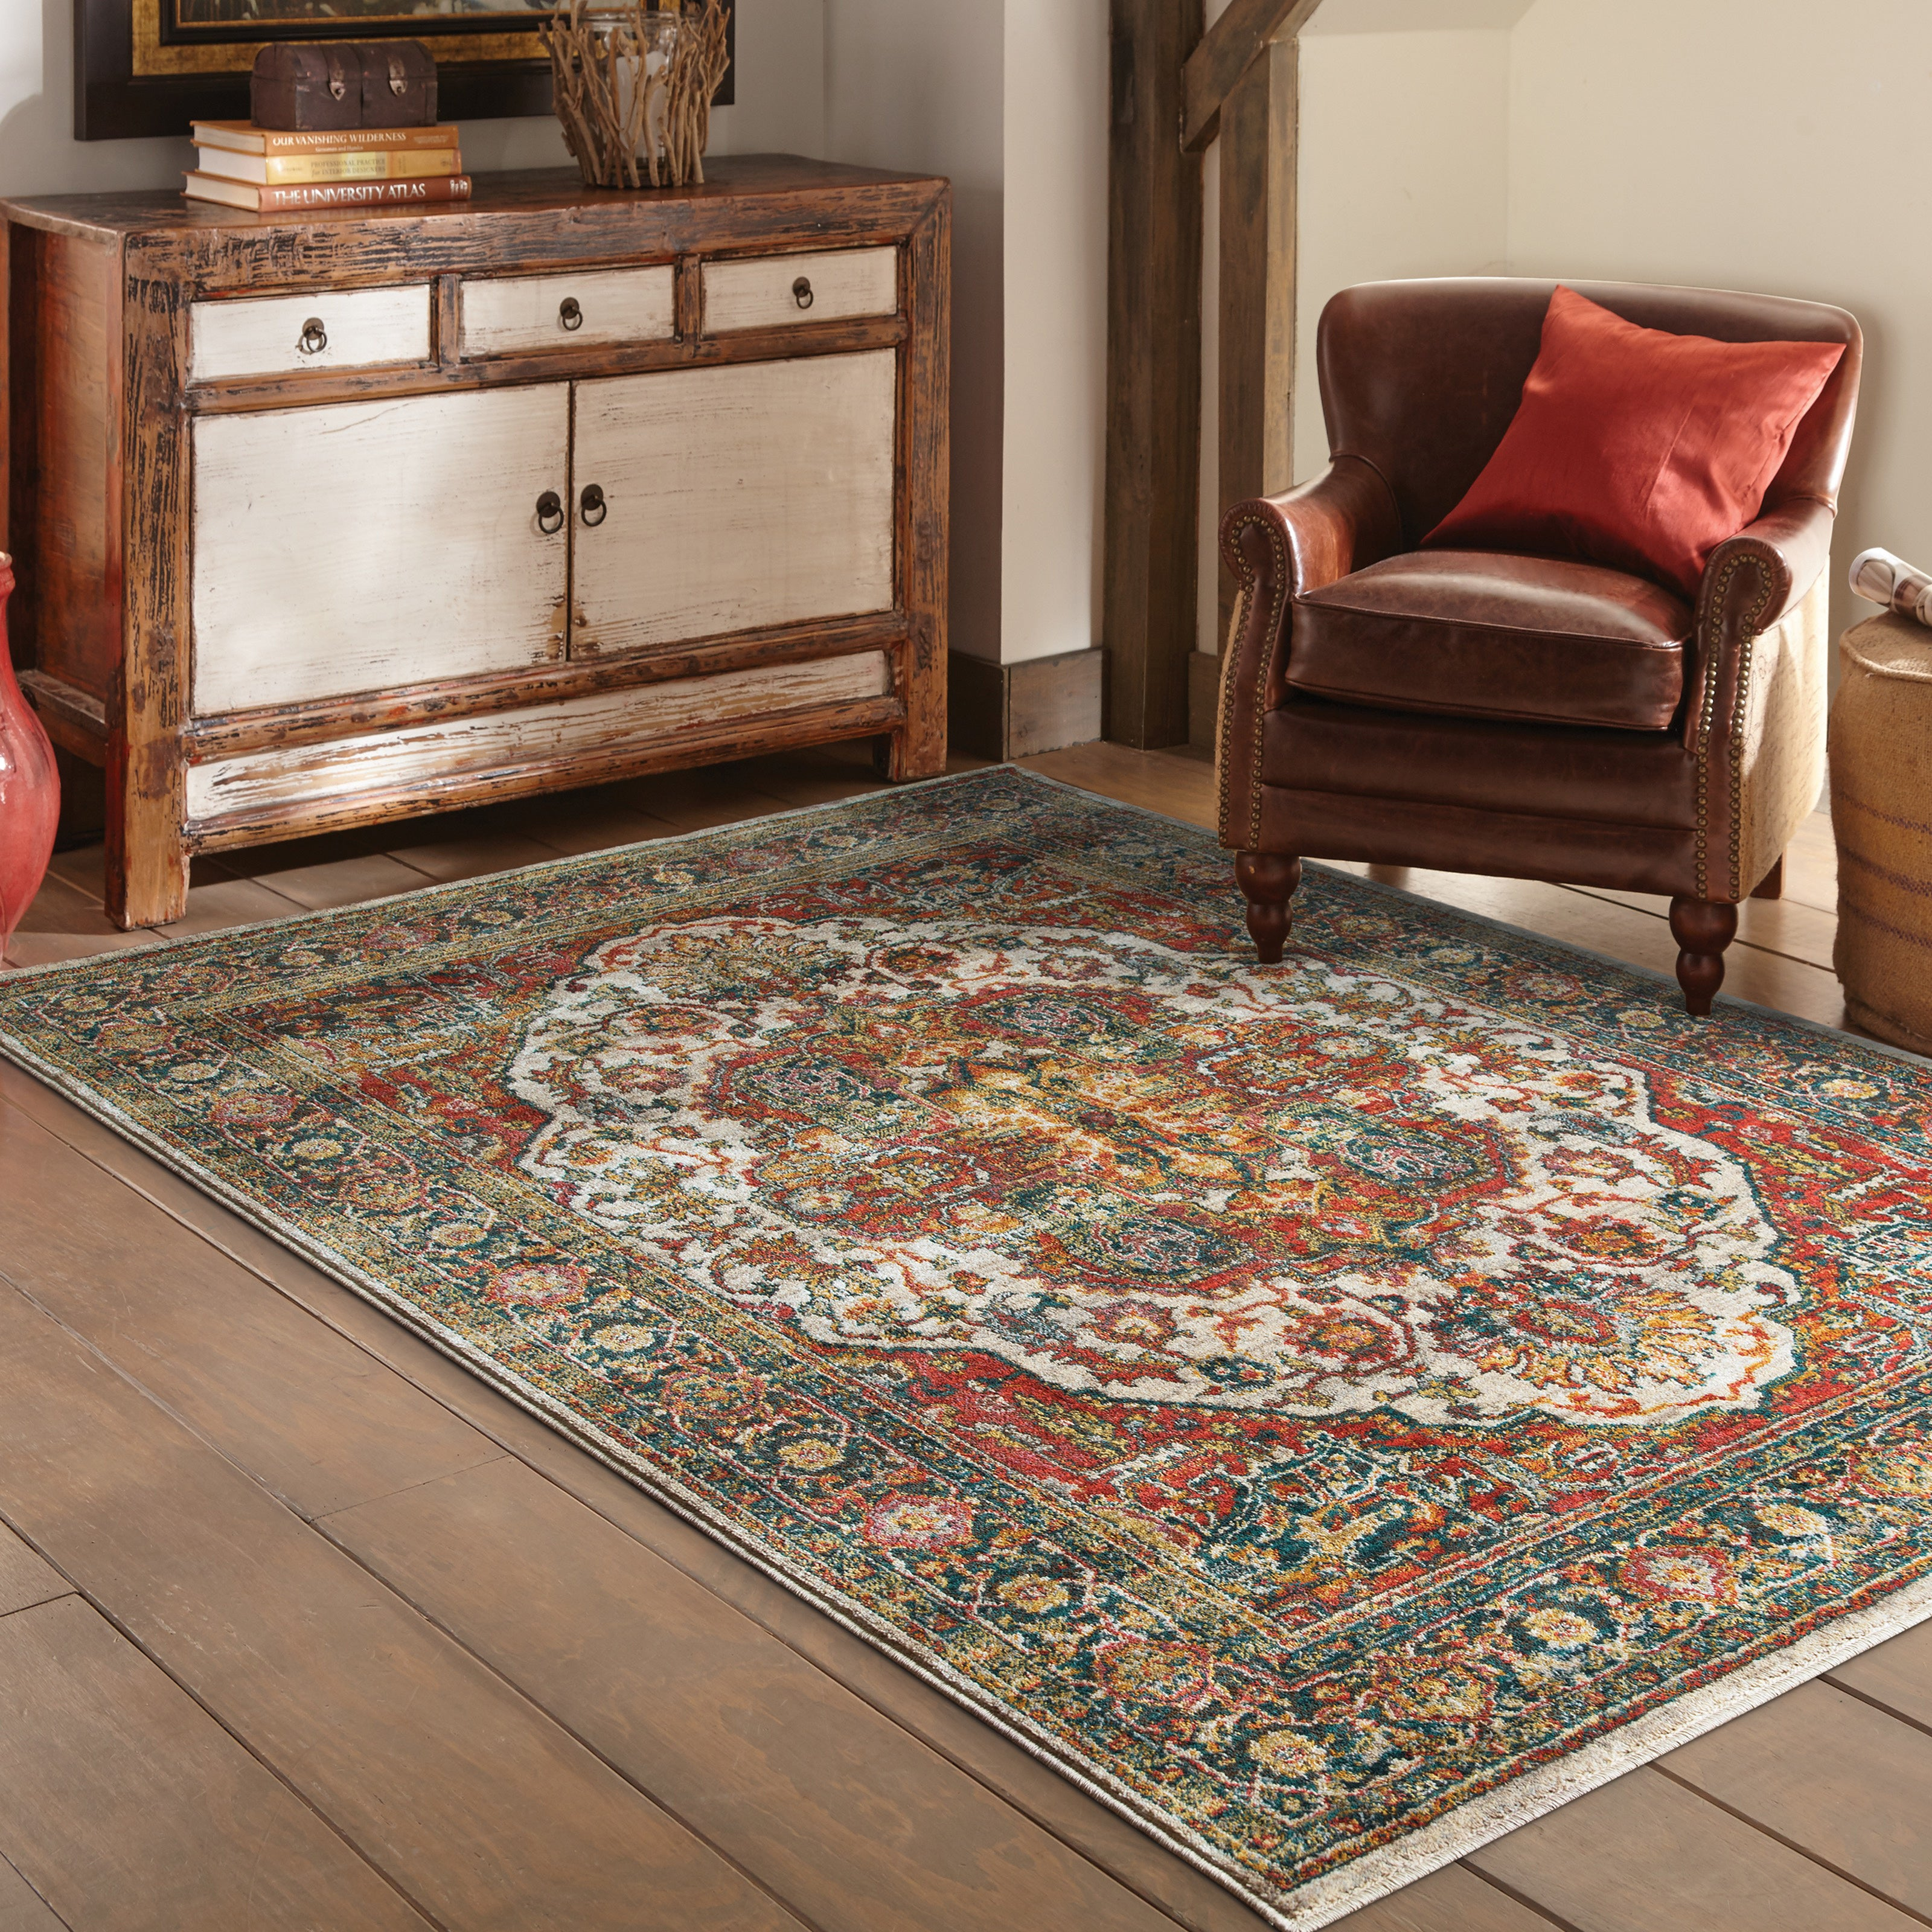 Style Haven Old World Persian Red/ Multi Rug (3'10 x 5'5)...